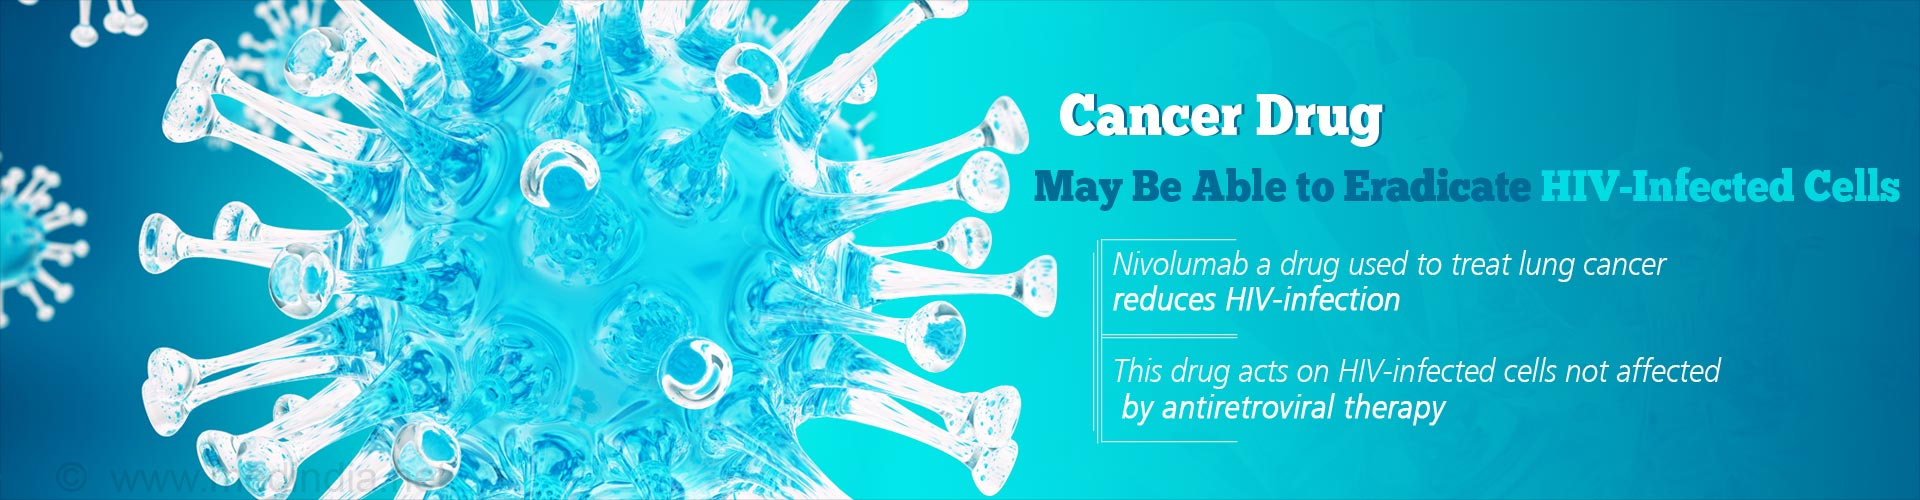 Cancer Drug May Be Able to Eradicate HIV-Infected Cells